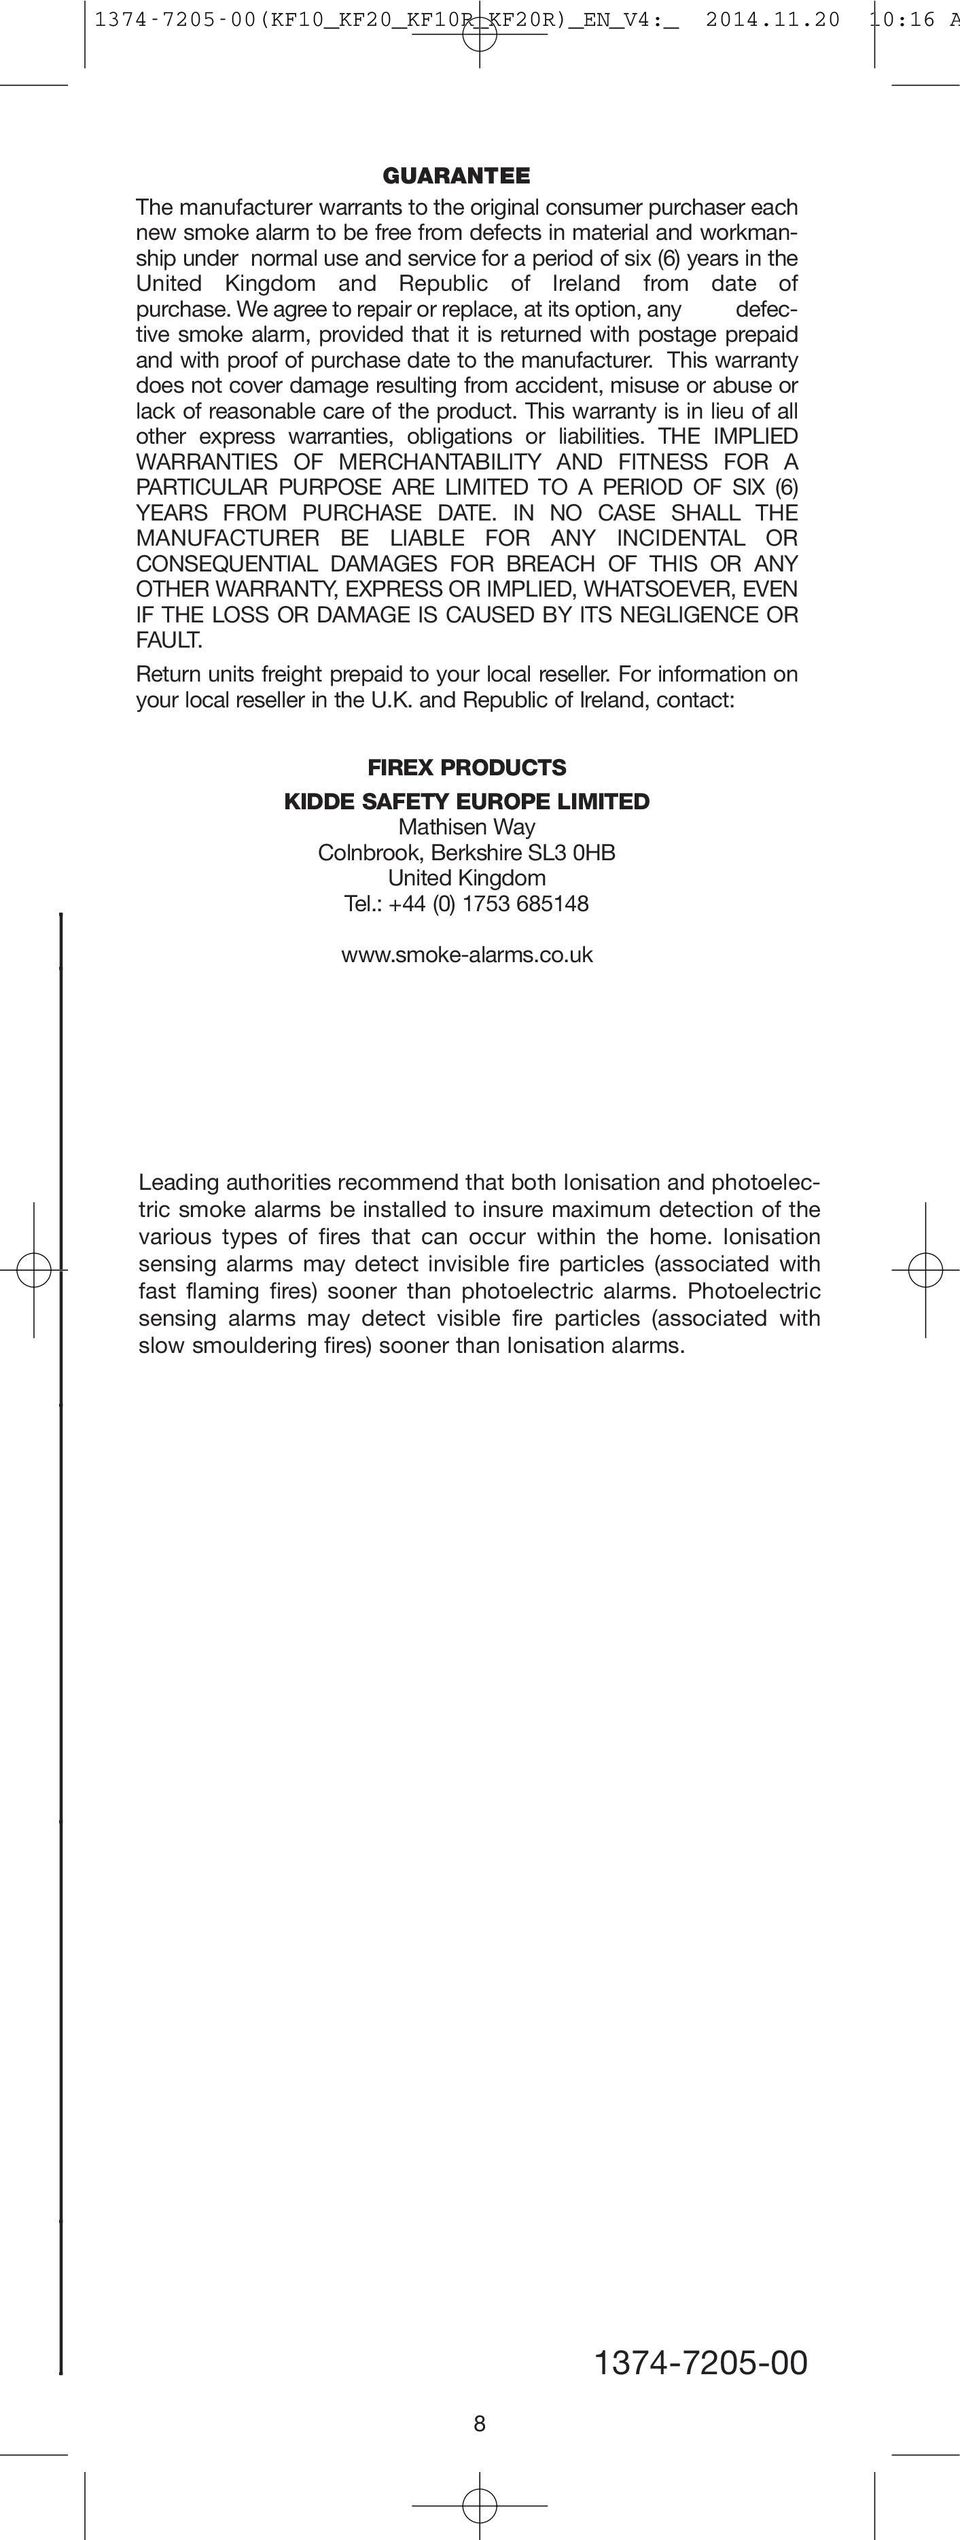 User Guide Please Read And Save Installer Leave This Firex Smoke Detector Wiring Diagram Six 6 Years In The United Kingdom Republic Of Ireland From Date